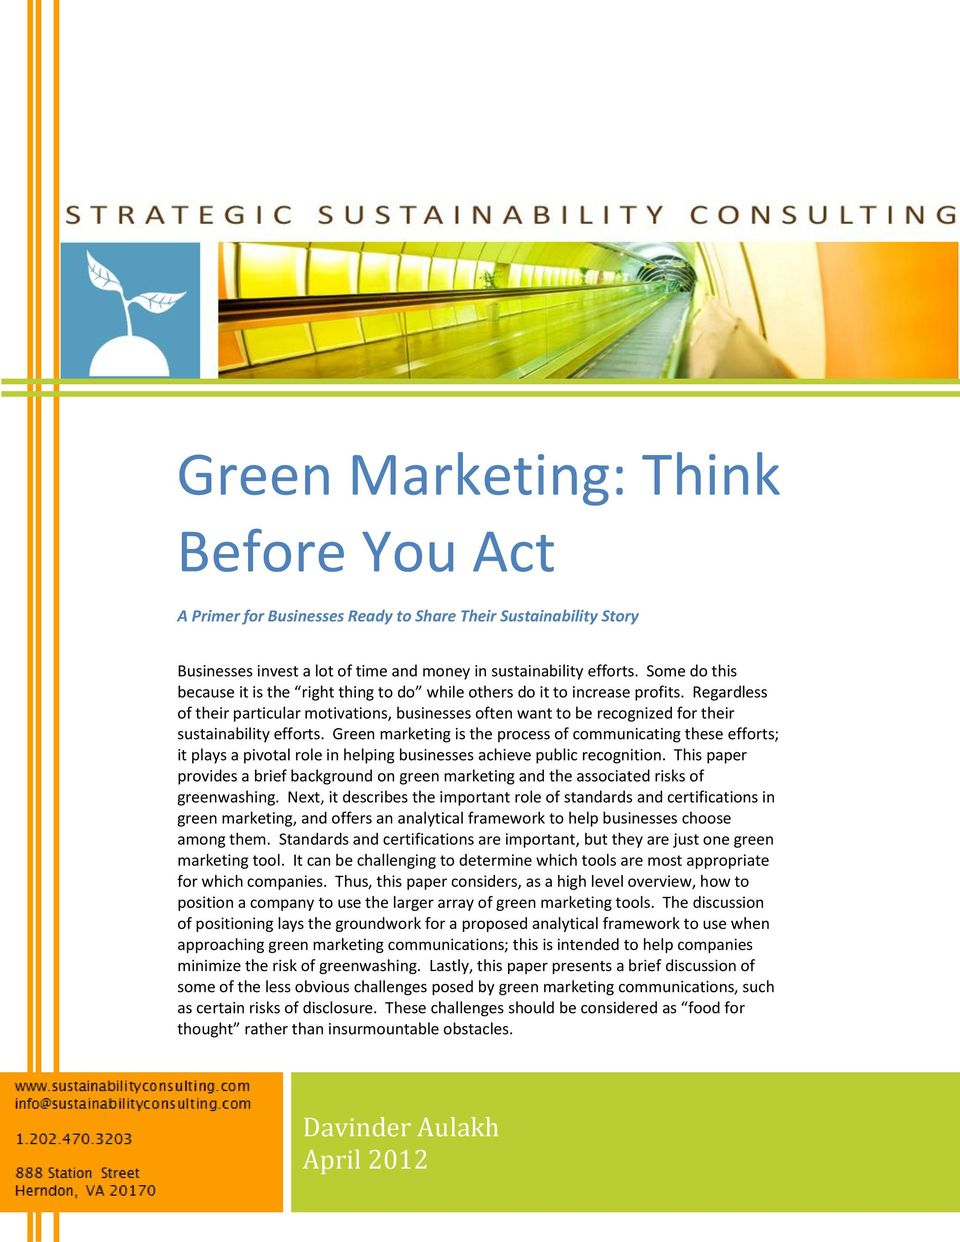 Regardless of their particular motivations, businesses often want to be recognized for their sustainability efforts.